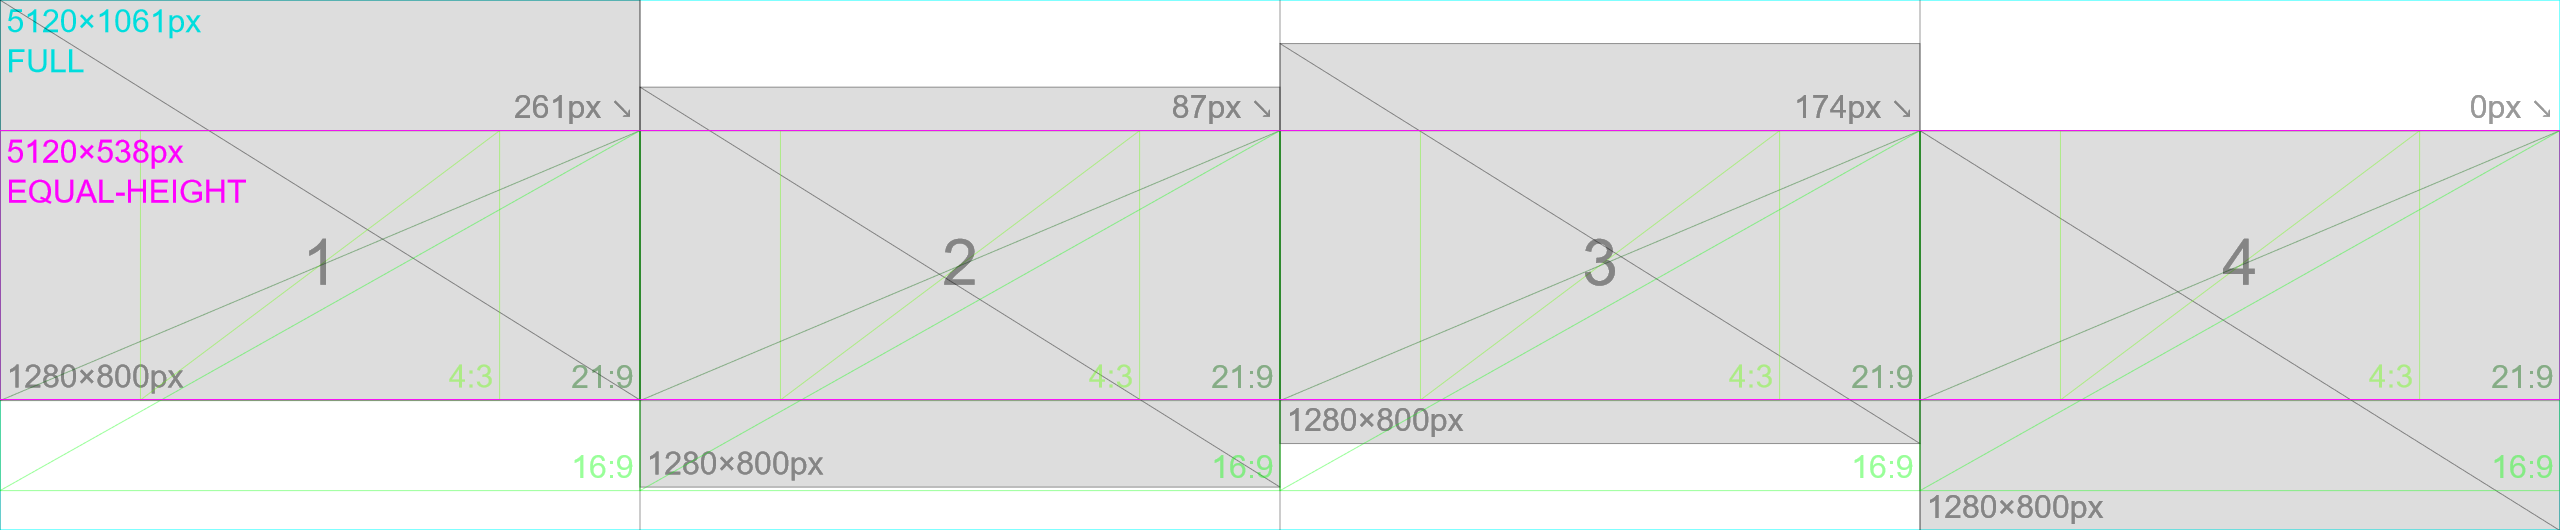 Illustration of the projection dimensions in pixels